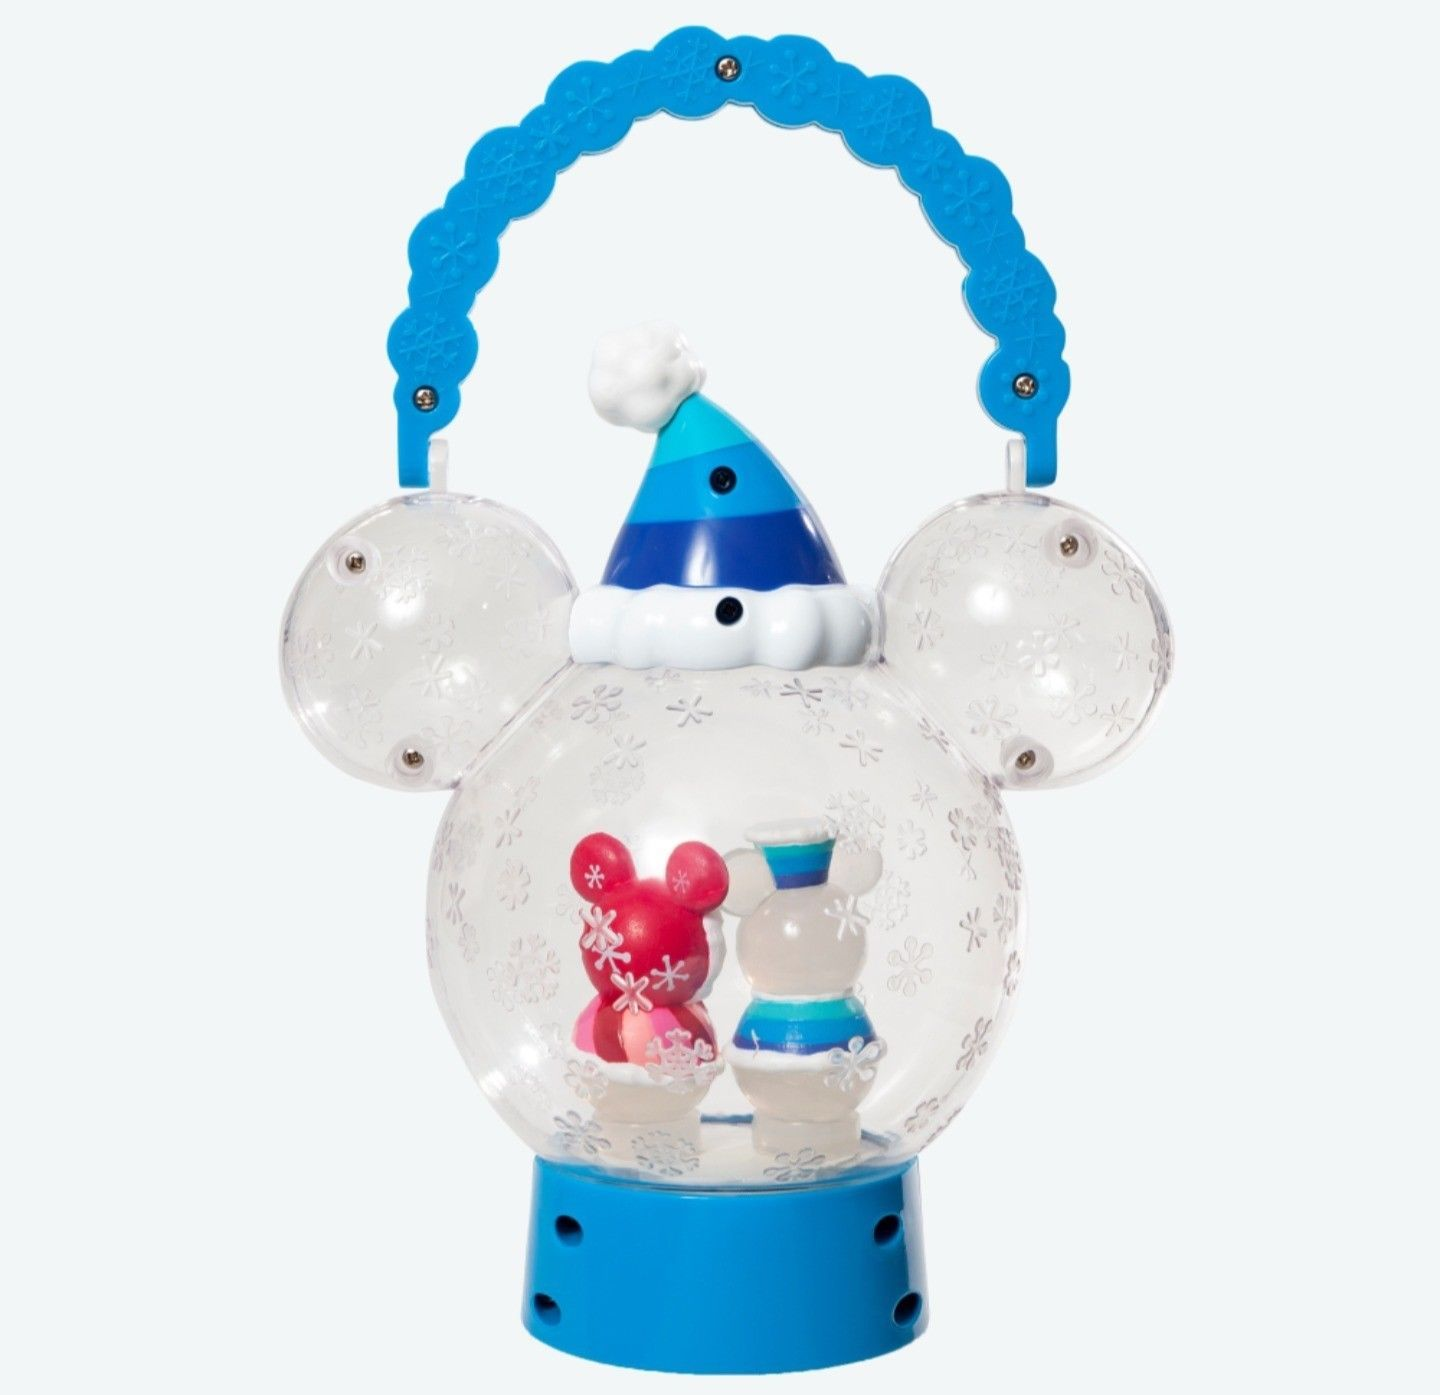 Tokyo Disney Land Snow Snow Lantern LED Bule Lamp illumination Mickey & Minnie